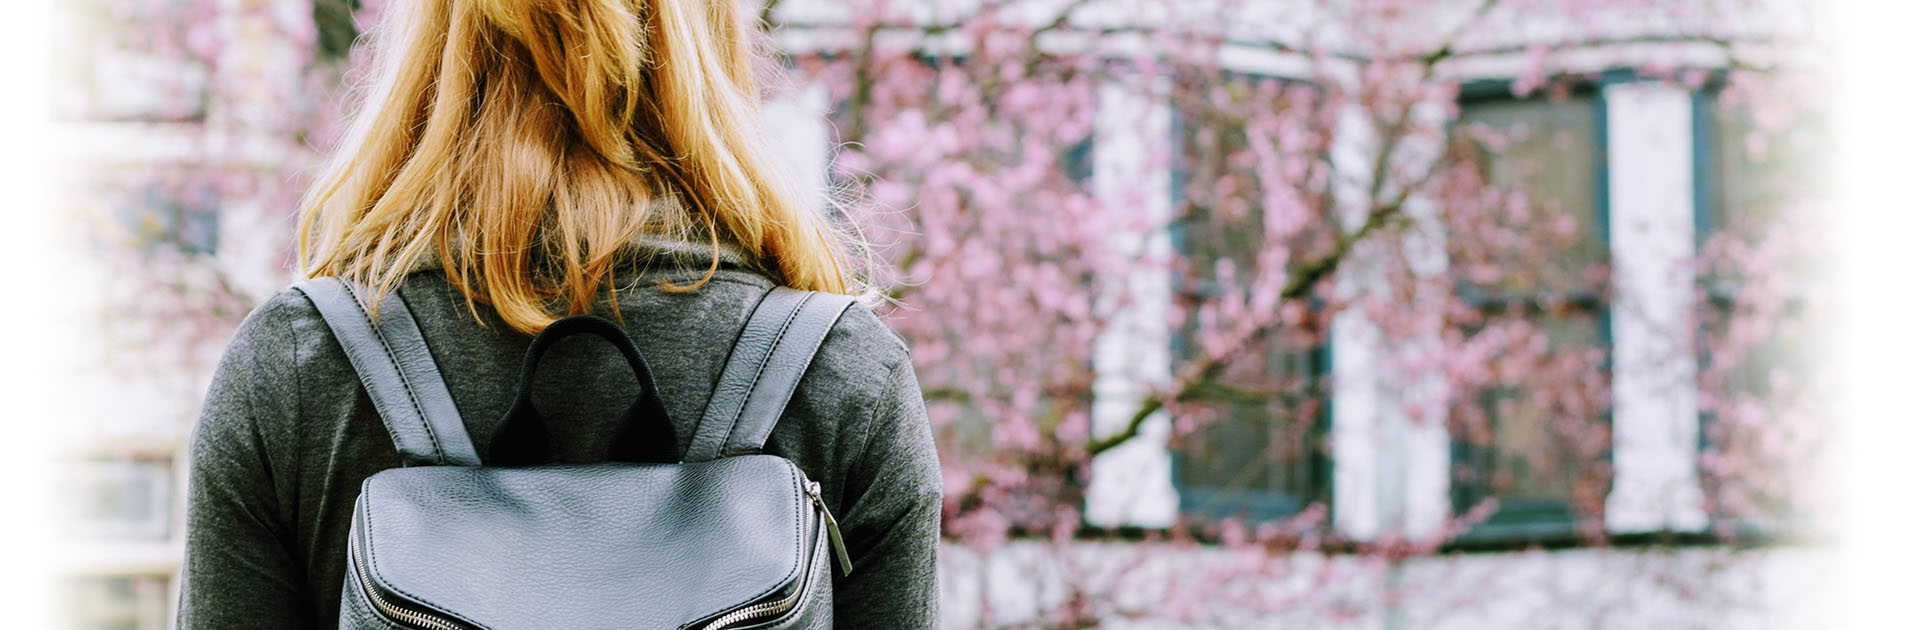 Student facing the other way with a backpack on her back